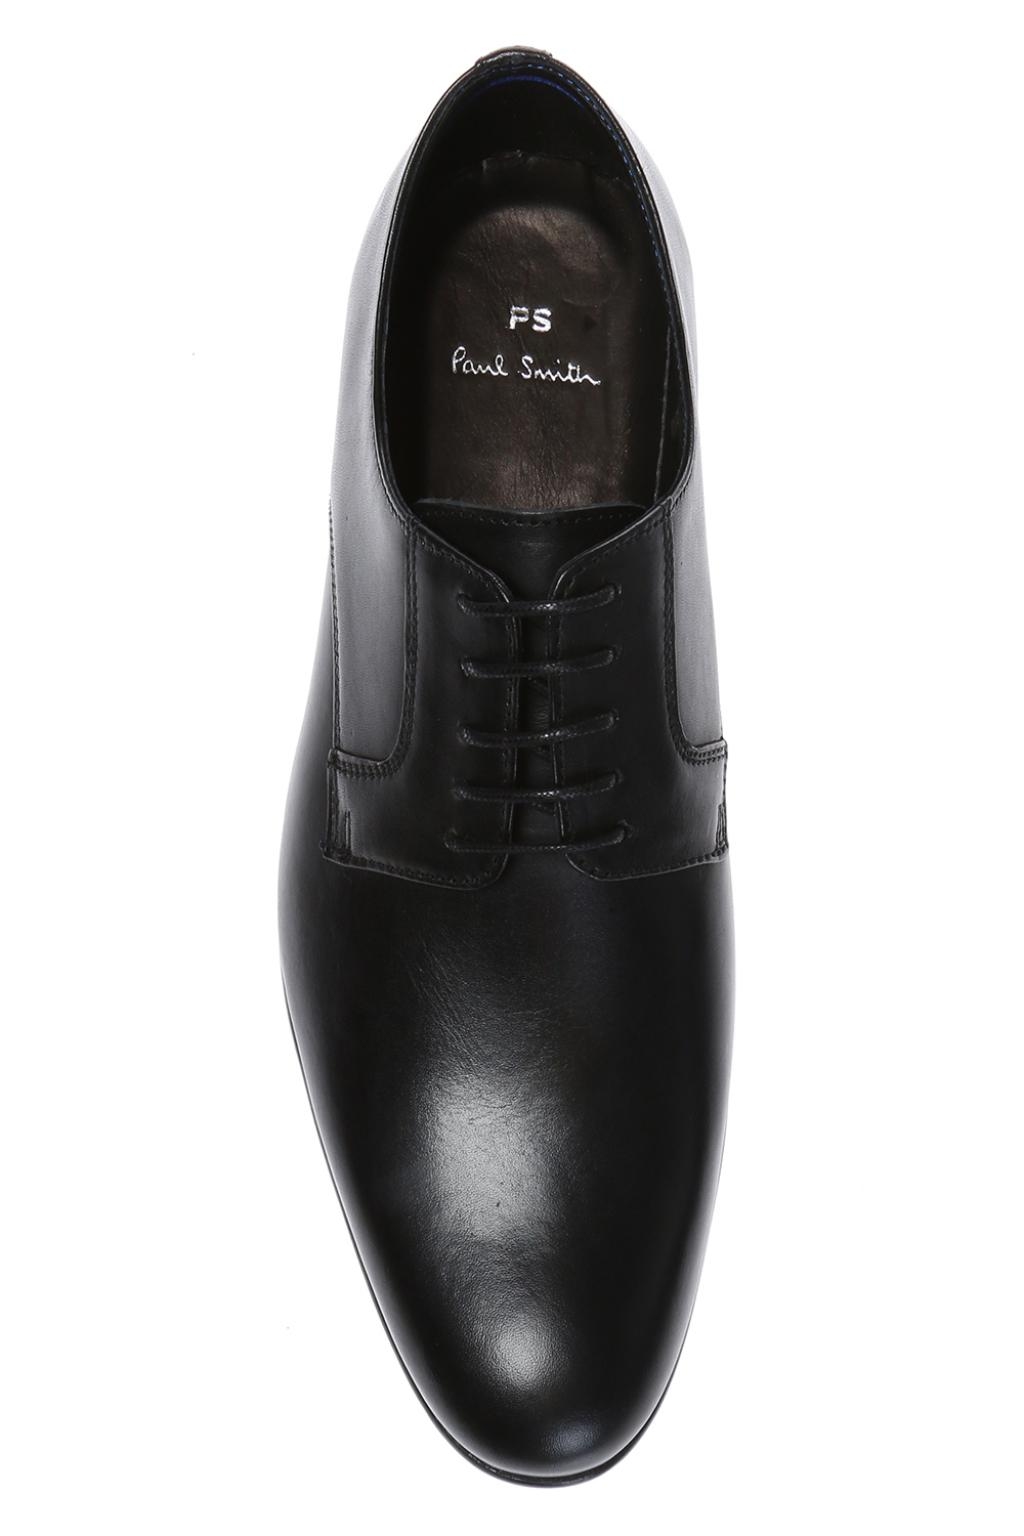 PS Paul Smith 'Gould' derby shoes